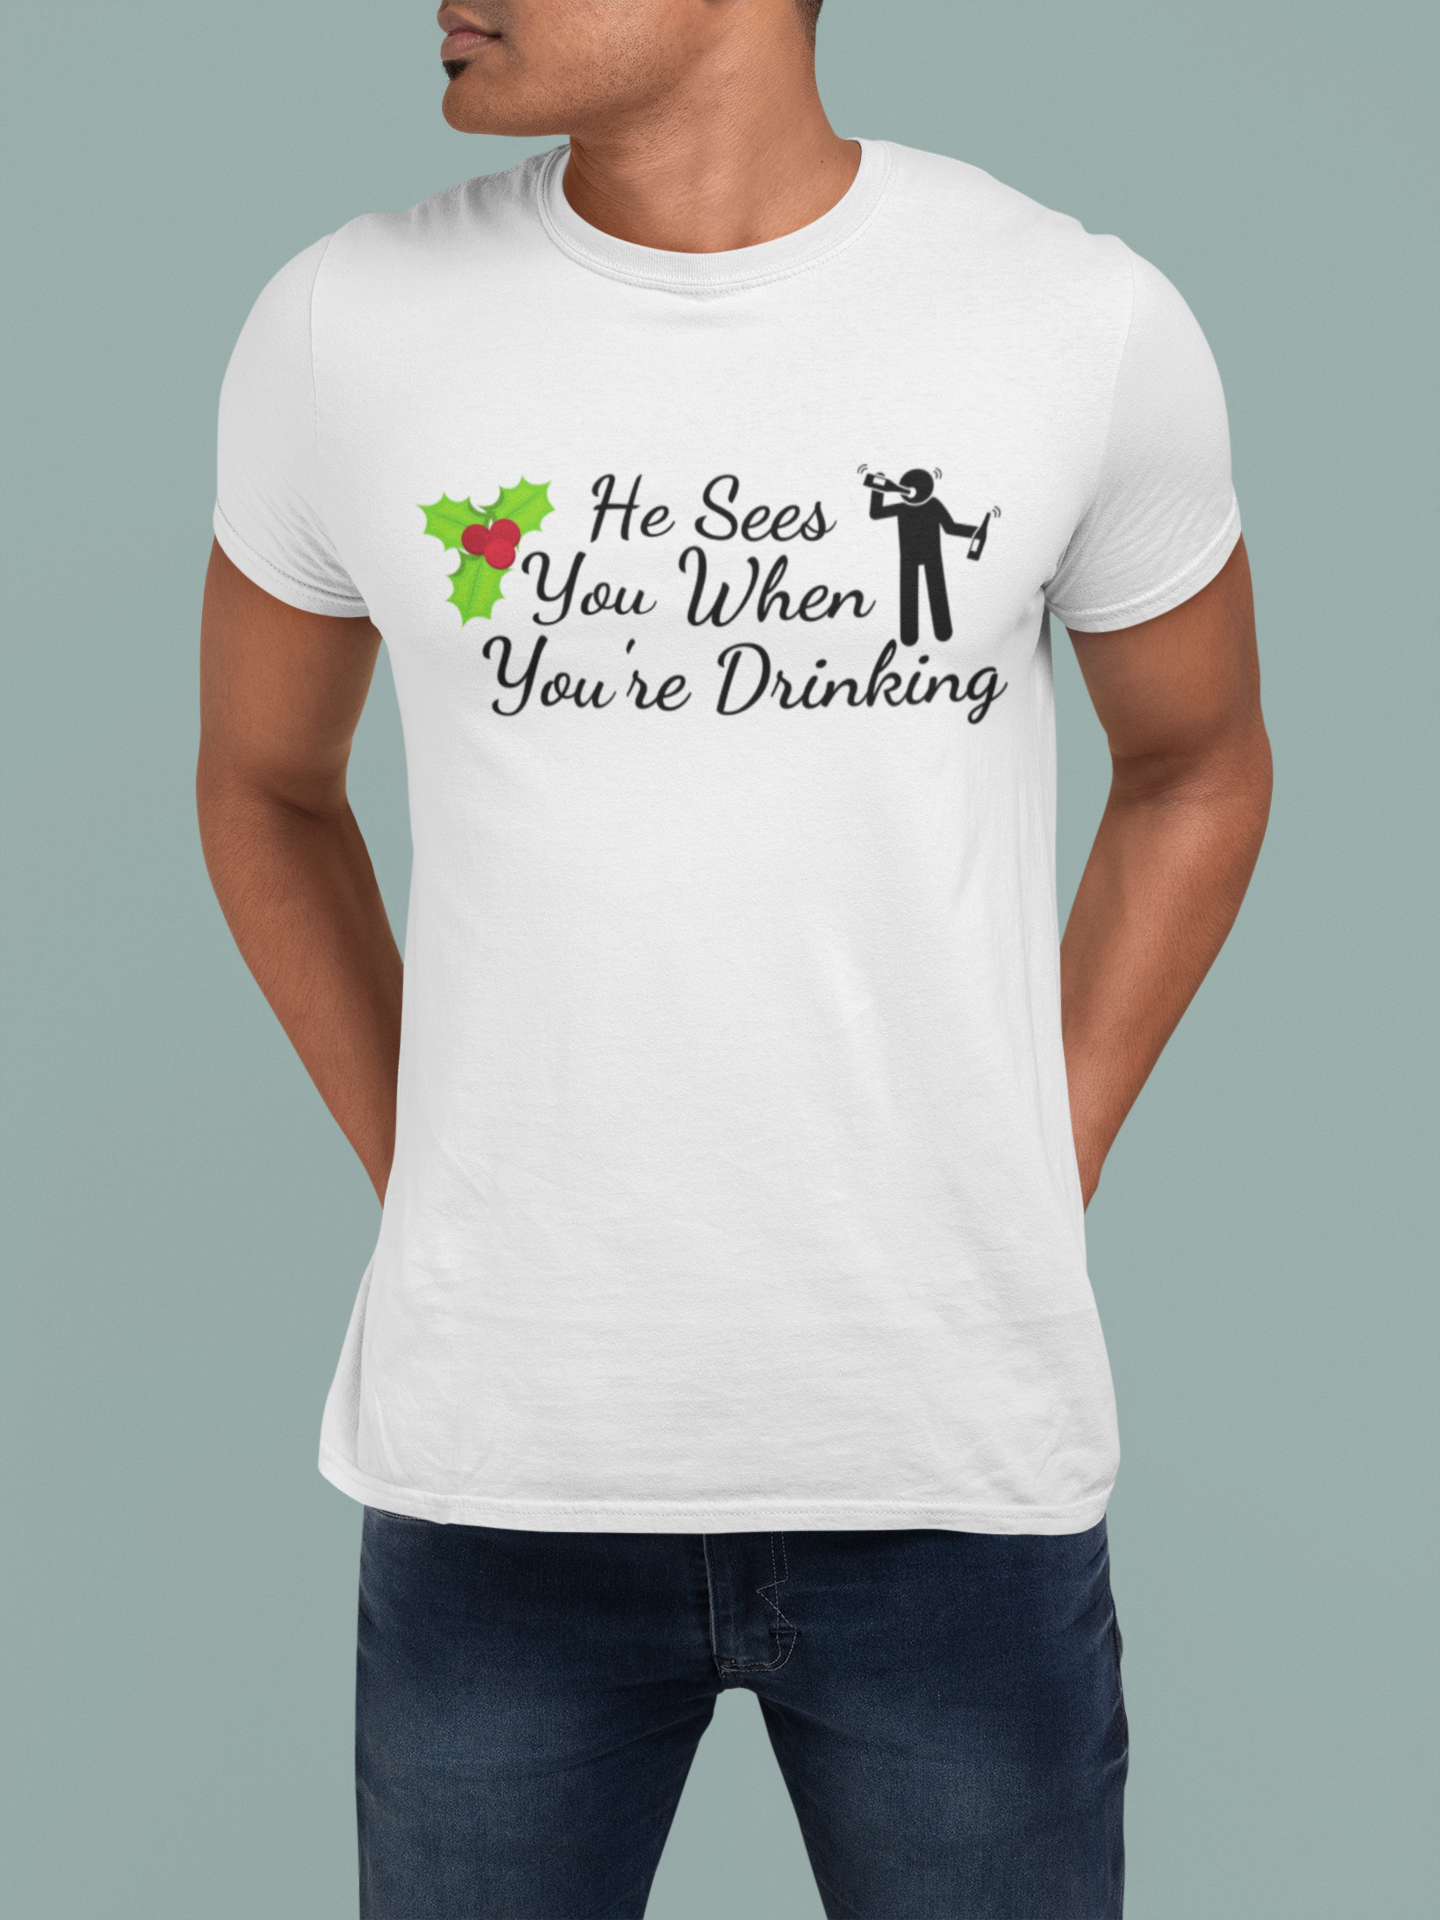 He Sees You When You're Drinking T-Shirt by Holiday Happy Hour